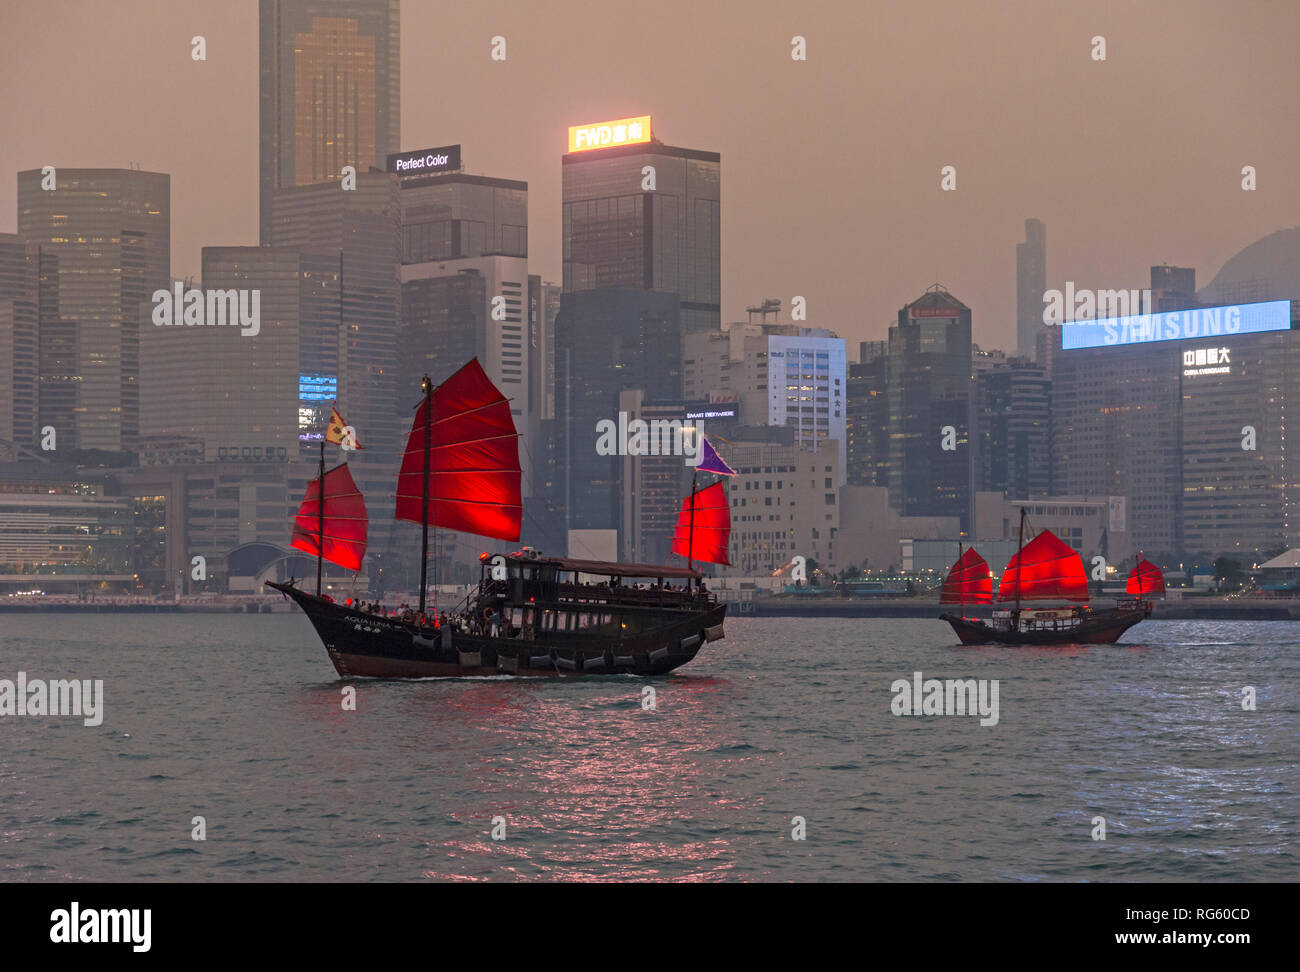 Aqualuna and Dukling junk tourist boats on their sunset sailing, Victoria Harbour, Hong Kong - Stock Image